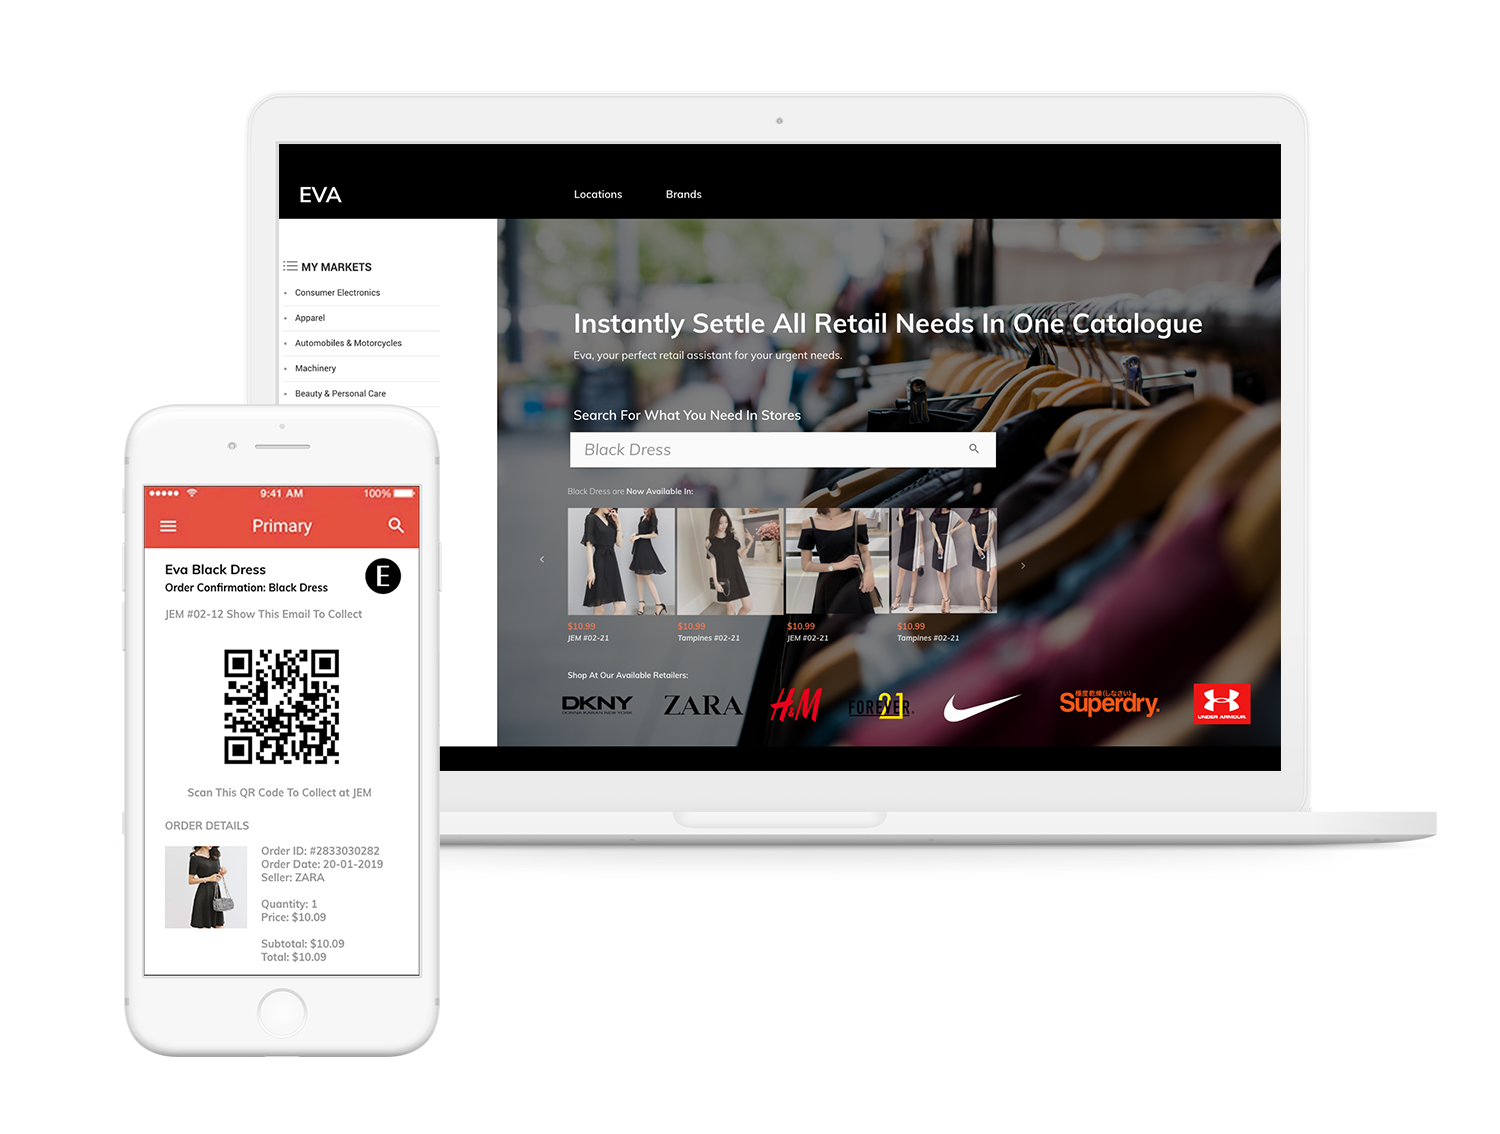 Eva: Online Catalogue for Offline Shopping